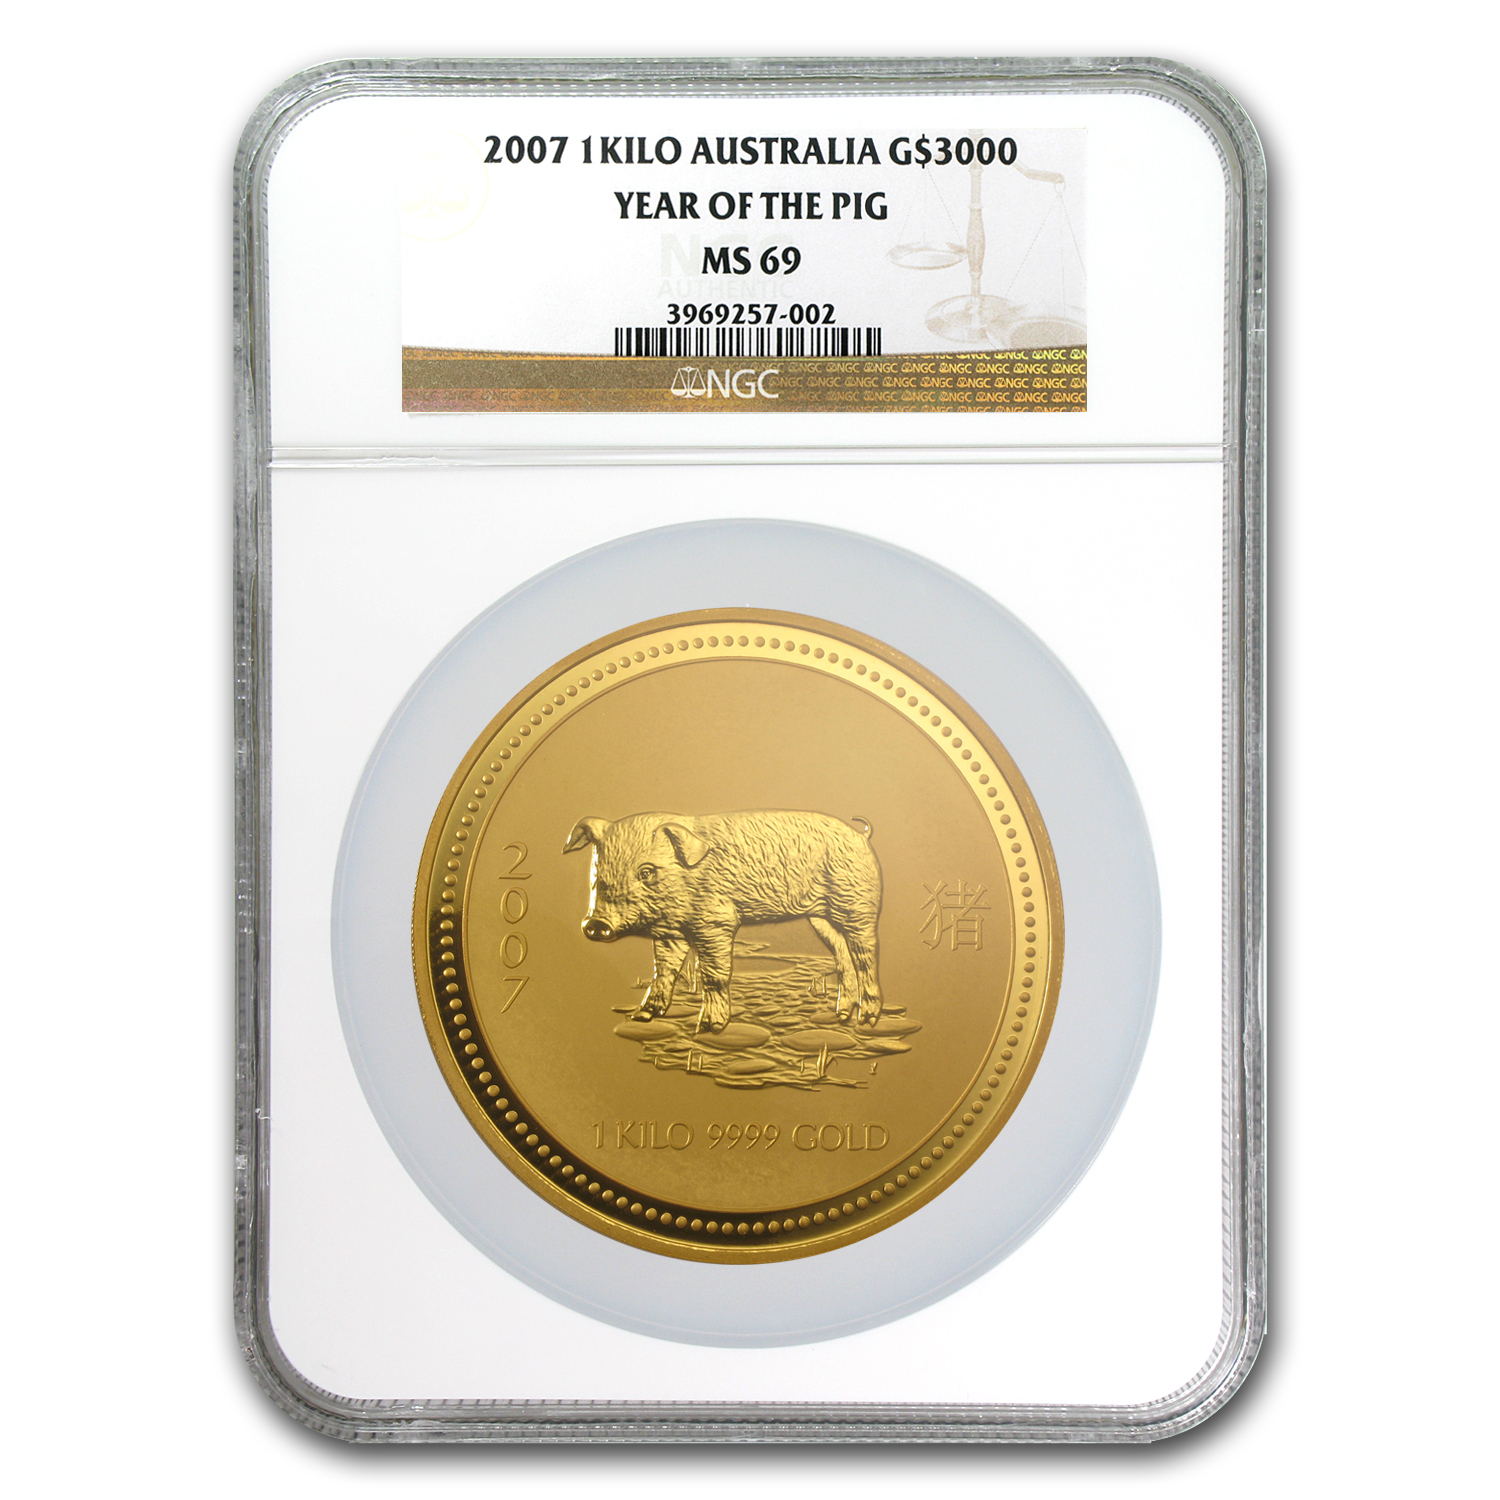 2007 1 kilo Gold Lunar Year of the Pig MS-69 NGC (Series I)